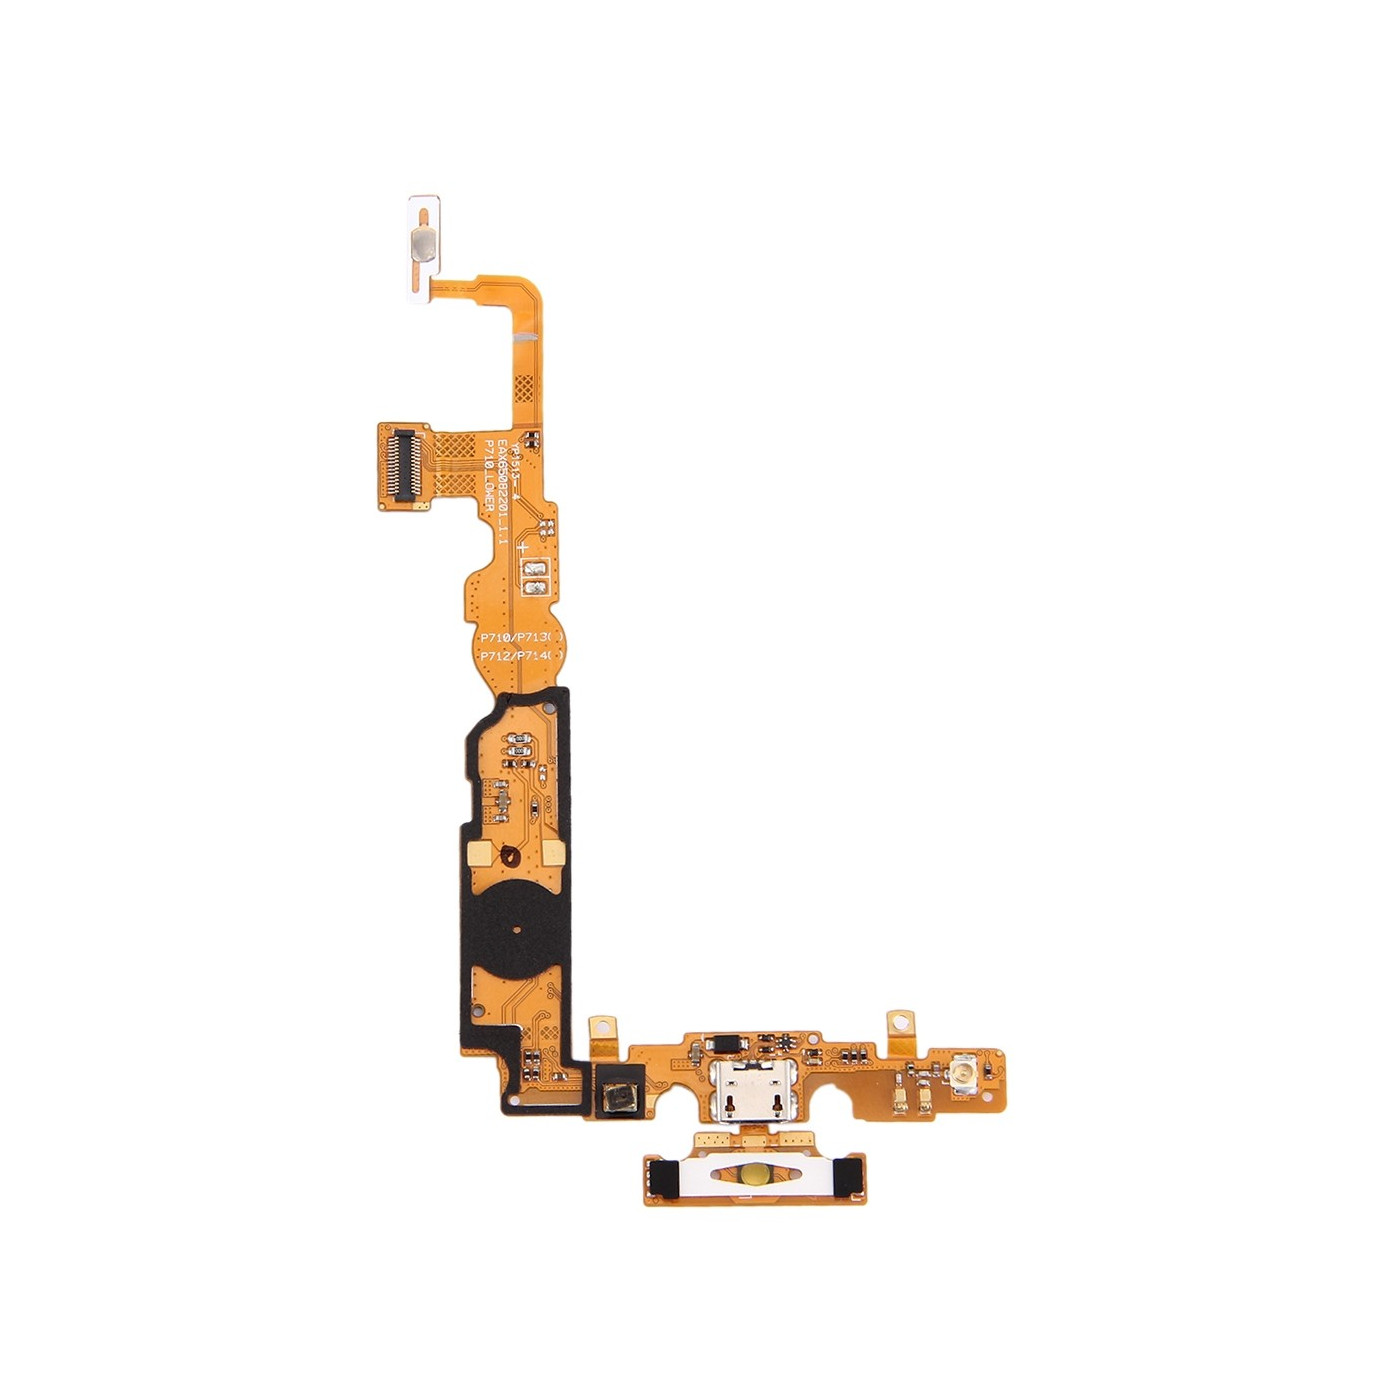 Connecteur de charge plat flexible pour station de recharge LG Optimus L7 II / P710